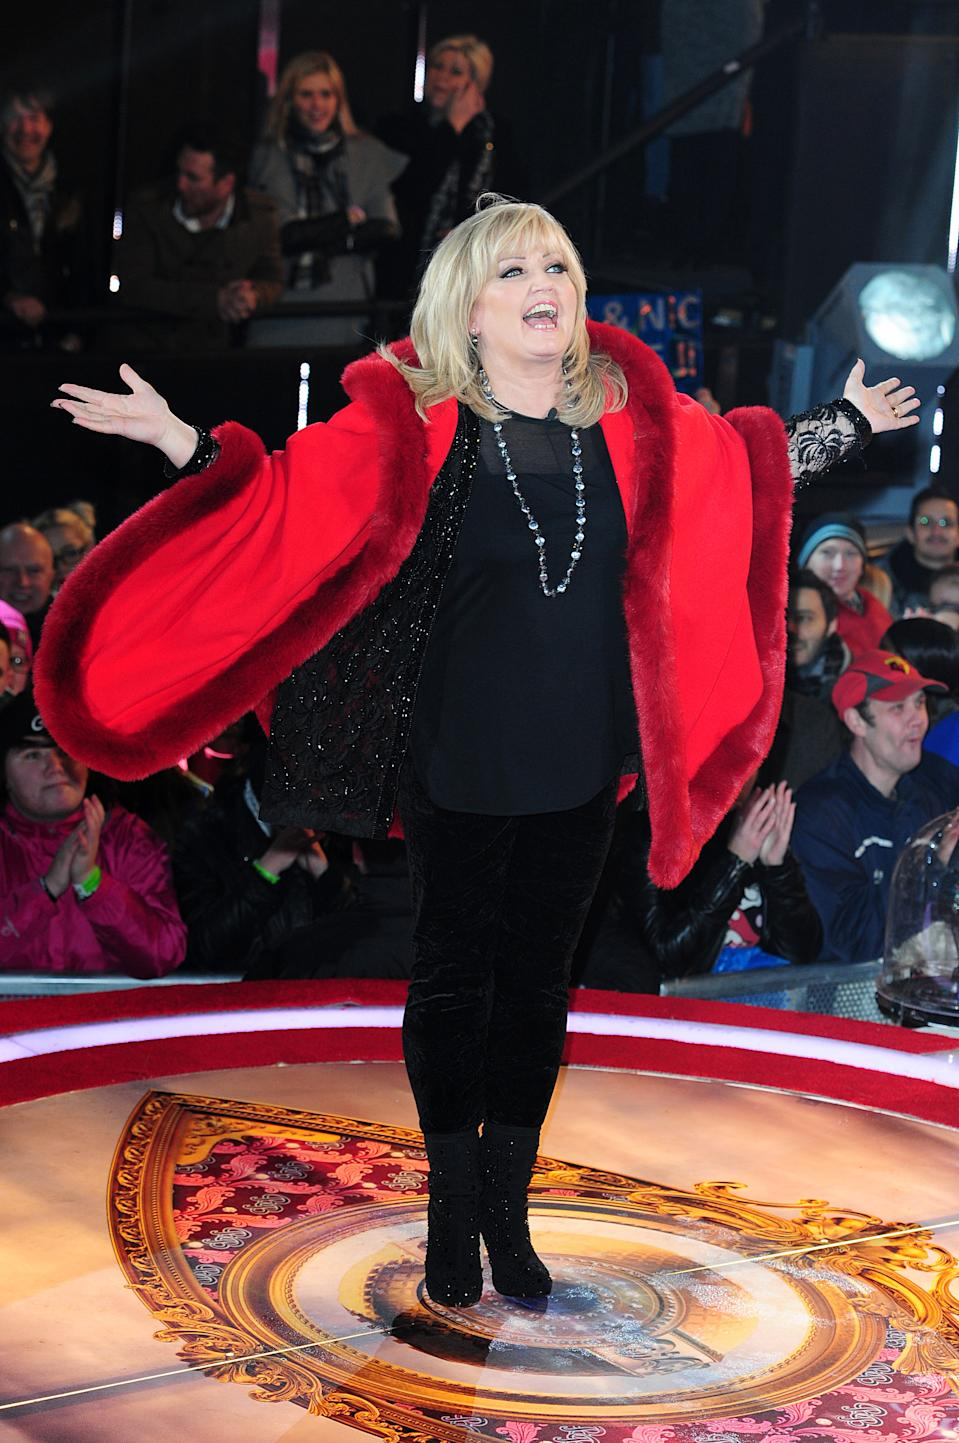 Linda Nolan arriving at the Celebrity Big Brother House, Elstree Studios, Hertfordshire.   (Photo by Ian West/PA Images via Getty Images)